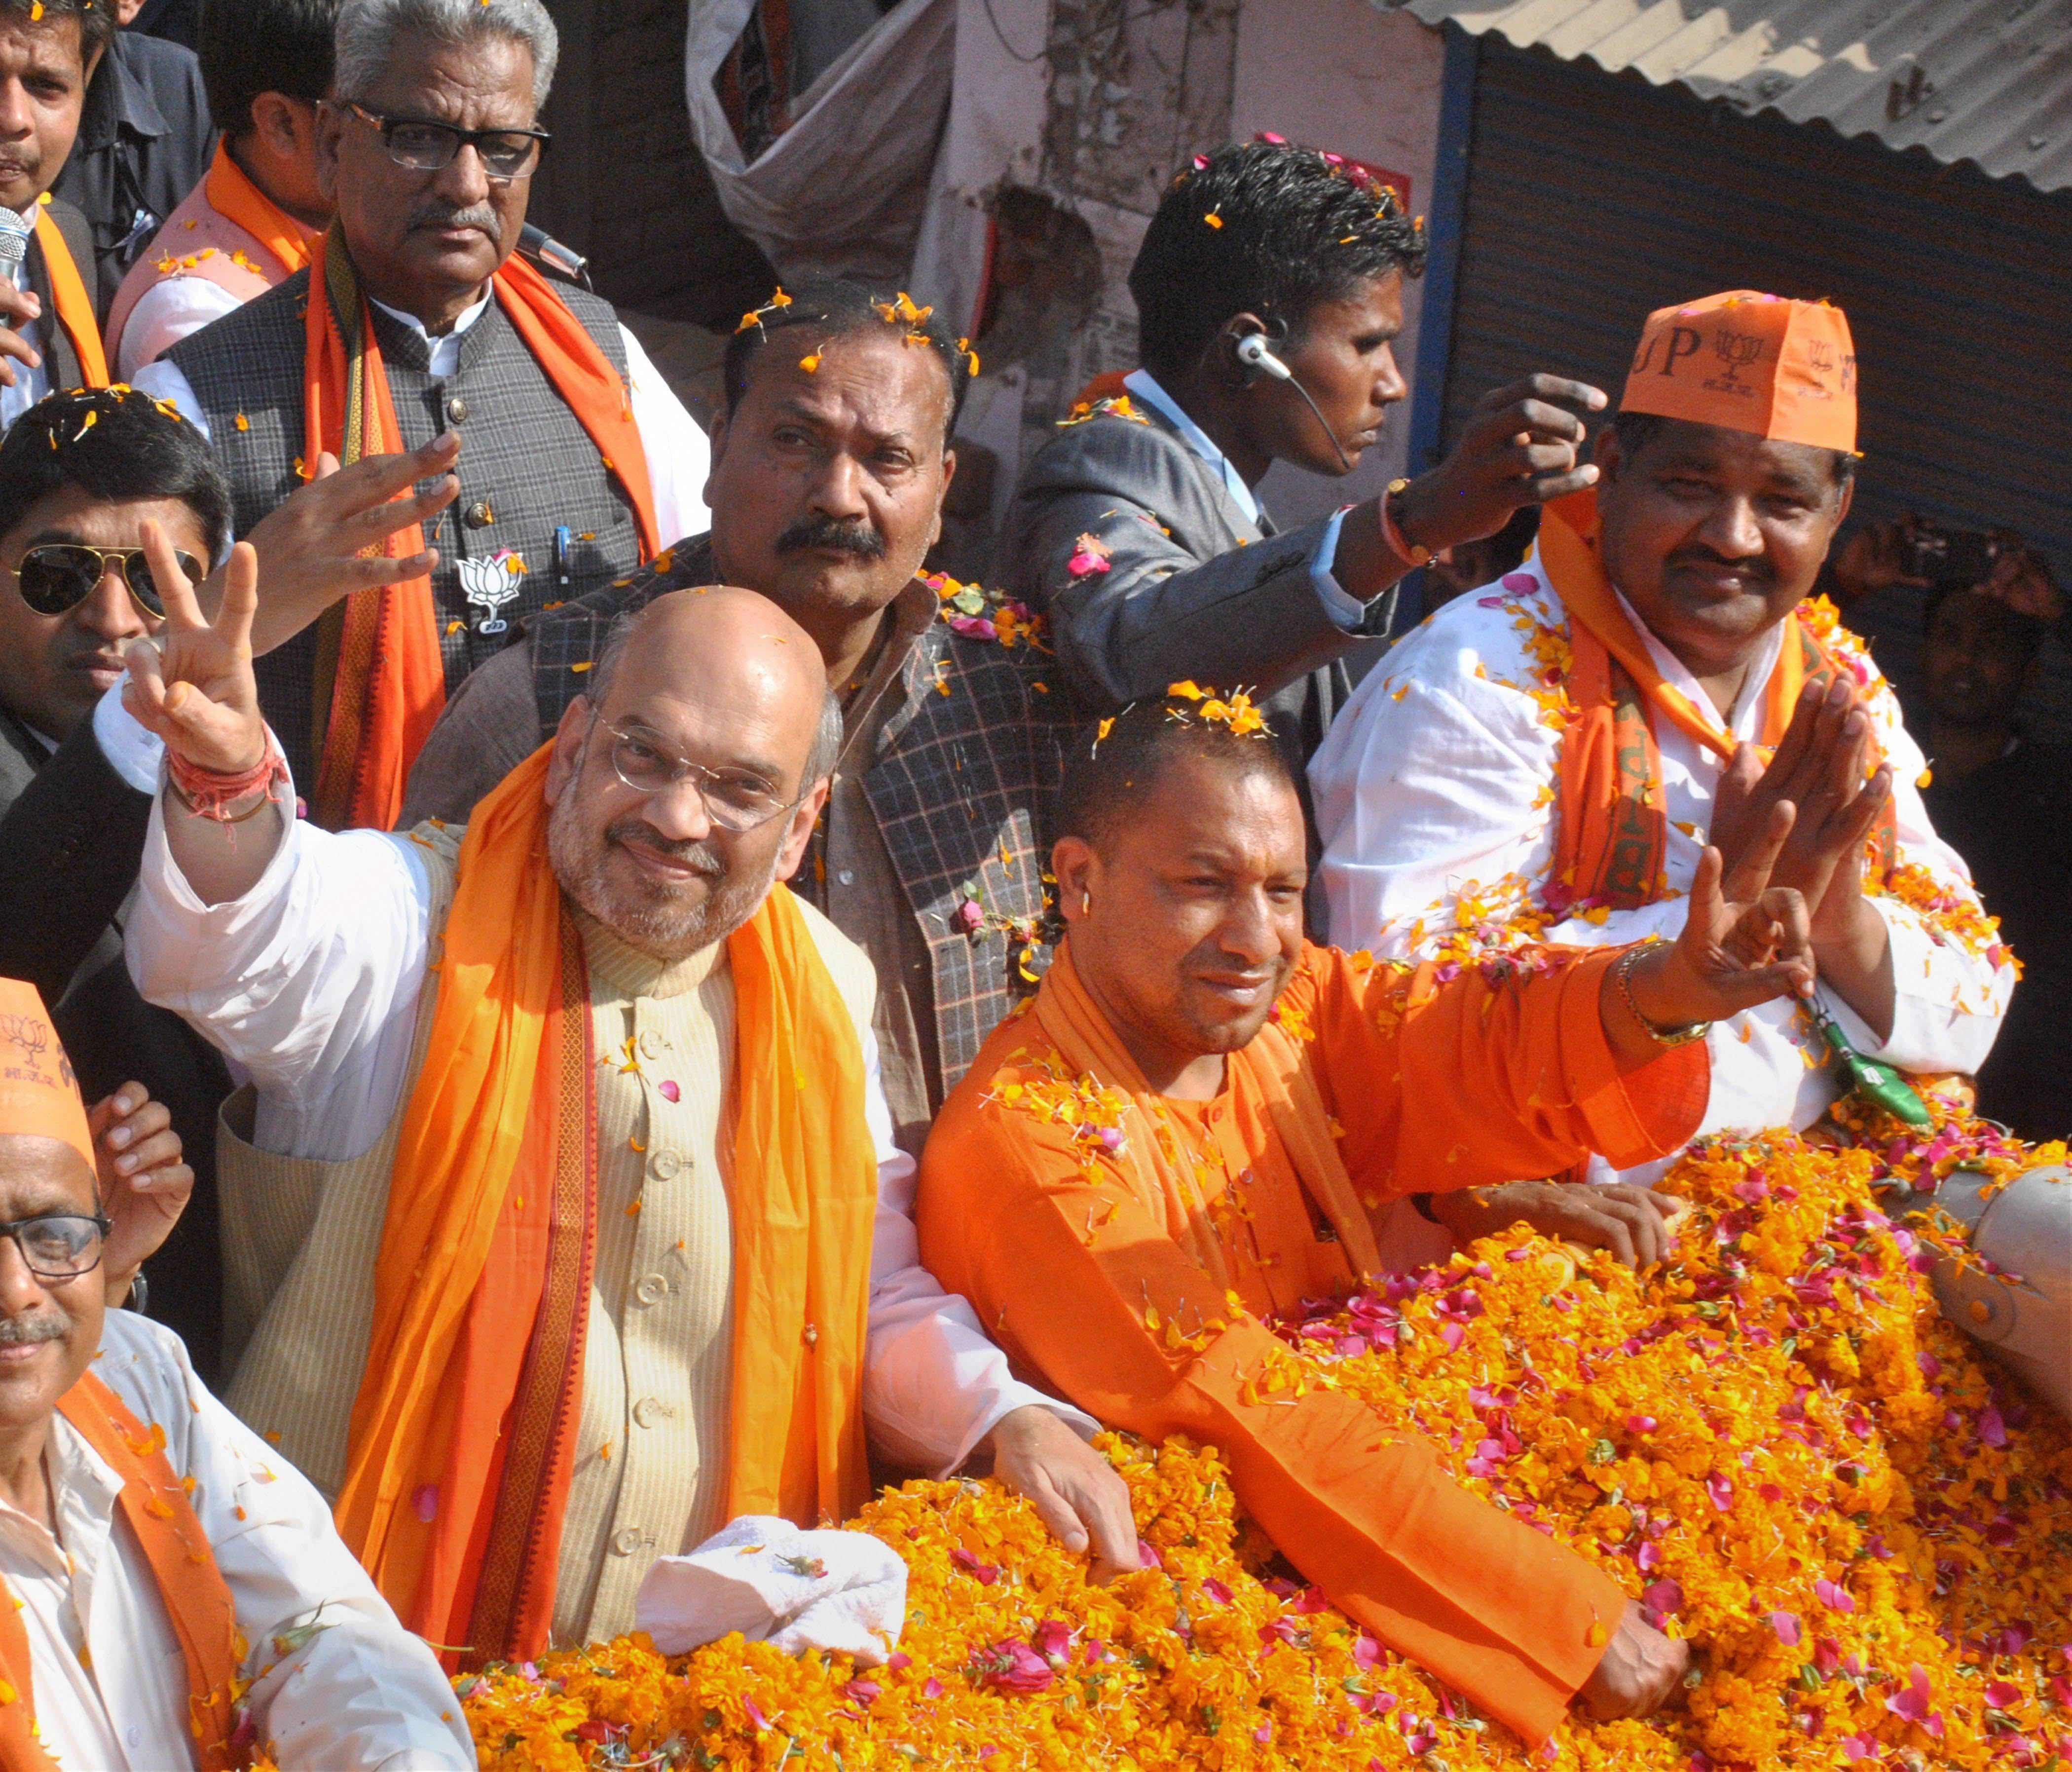 BJP president Amit Shah with party MP Yogi Aditya Nath during an election road show in Gorakhpur district on Thursday. Credit: PTI